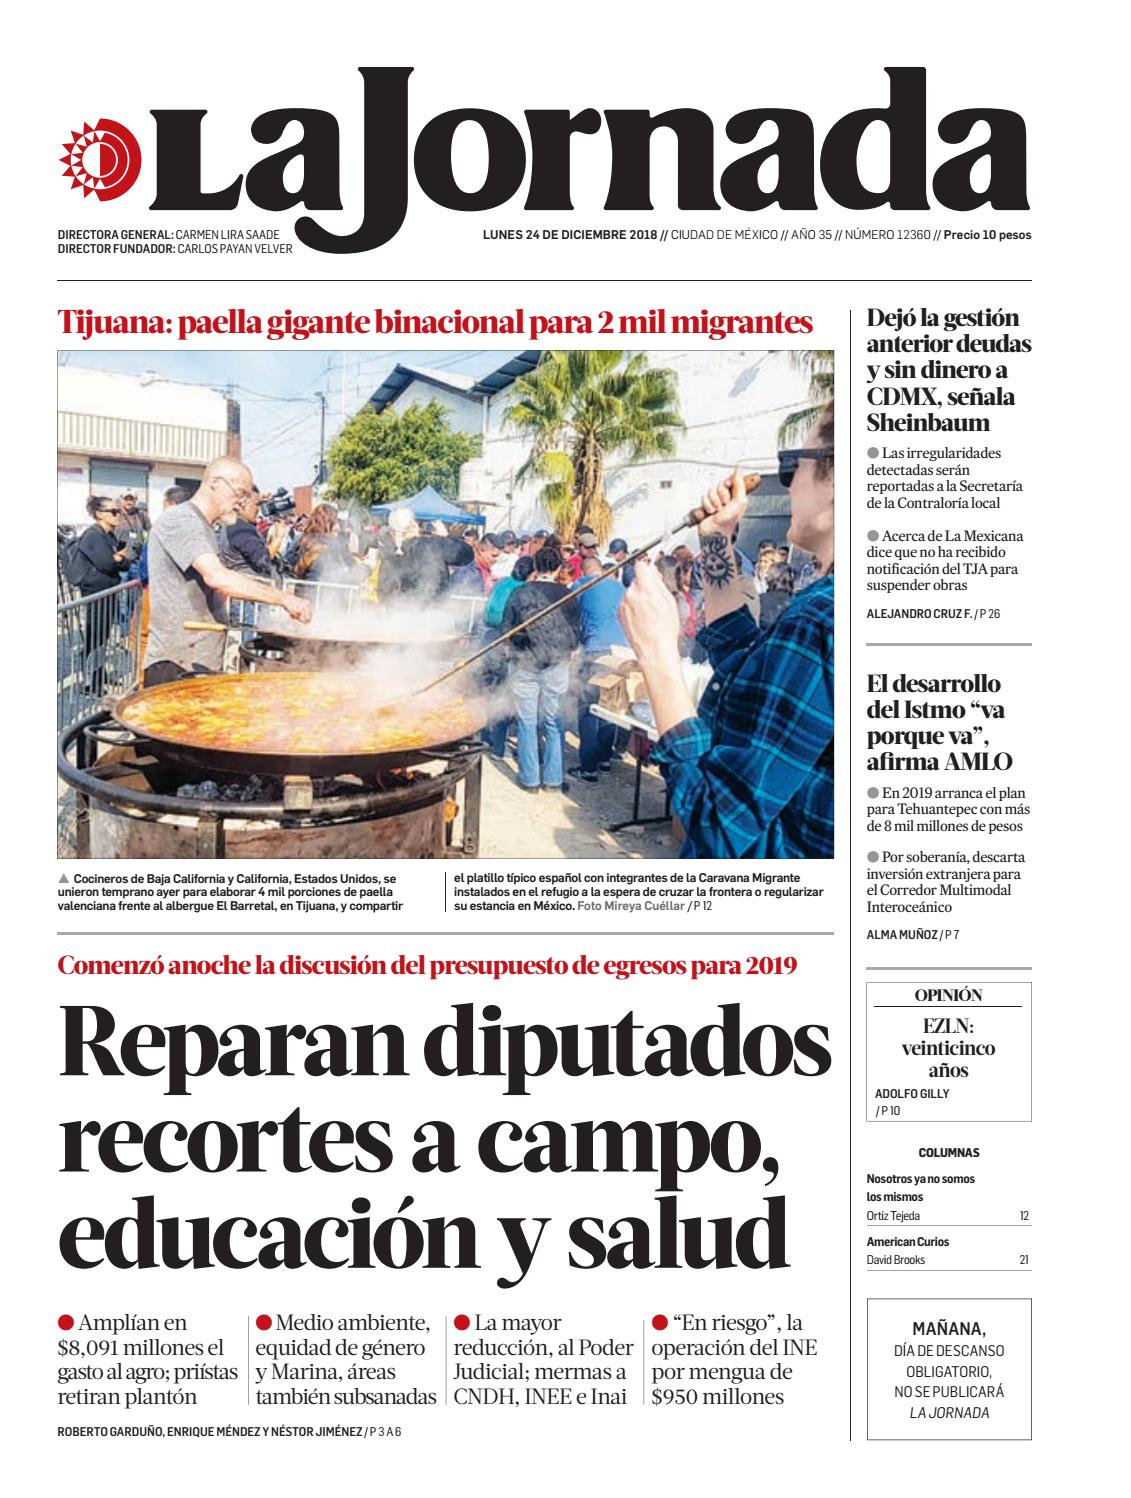 La Jornada 12 24 2018 By La Jornada Issuu